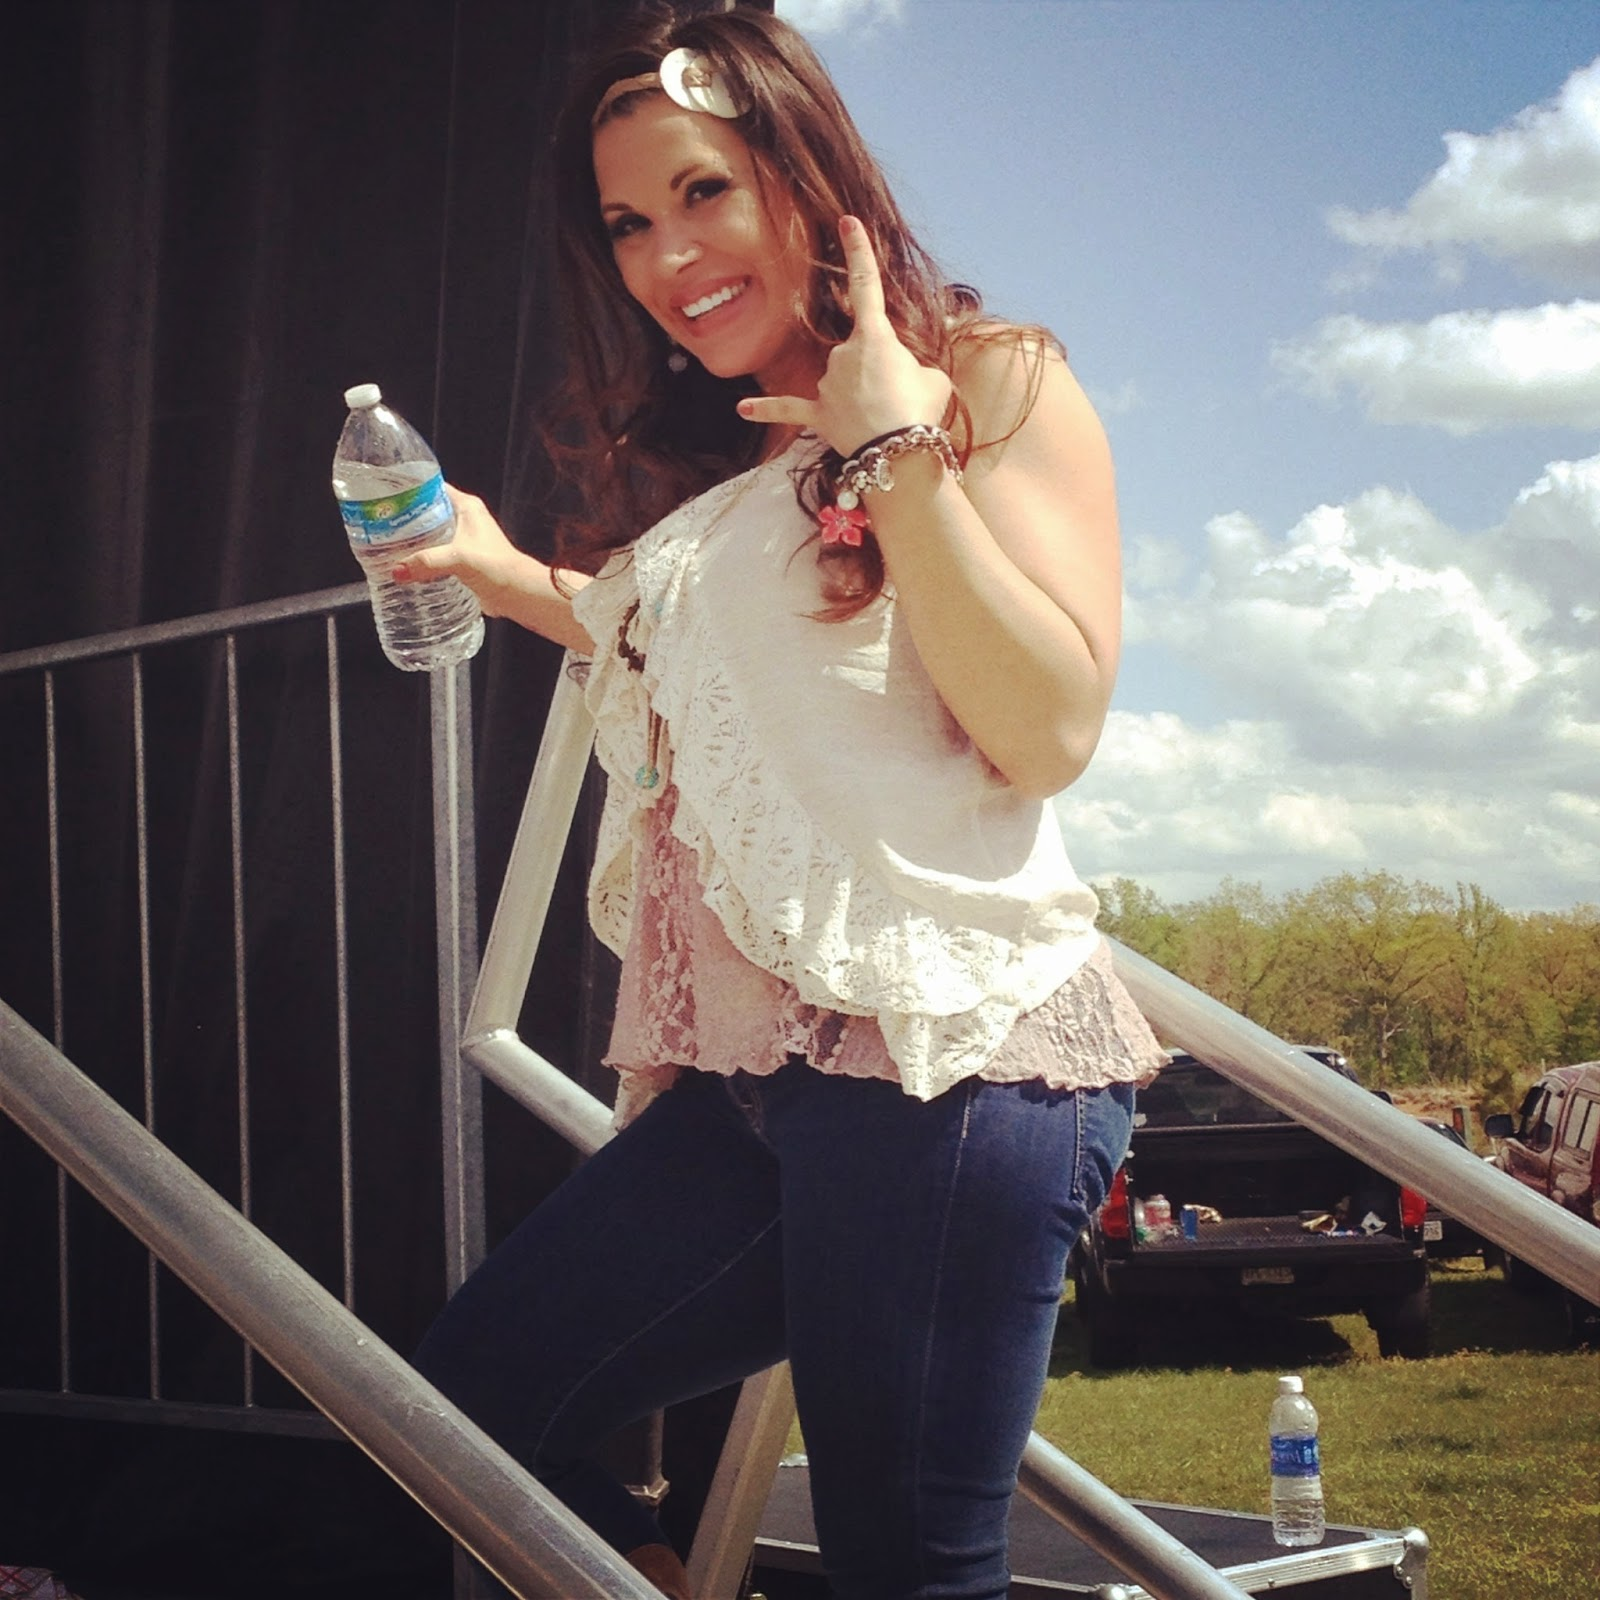 Mickie James 2012 Singing The lead singer gave me some